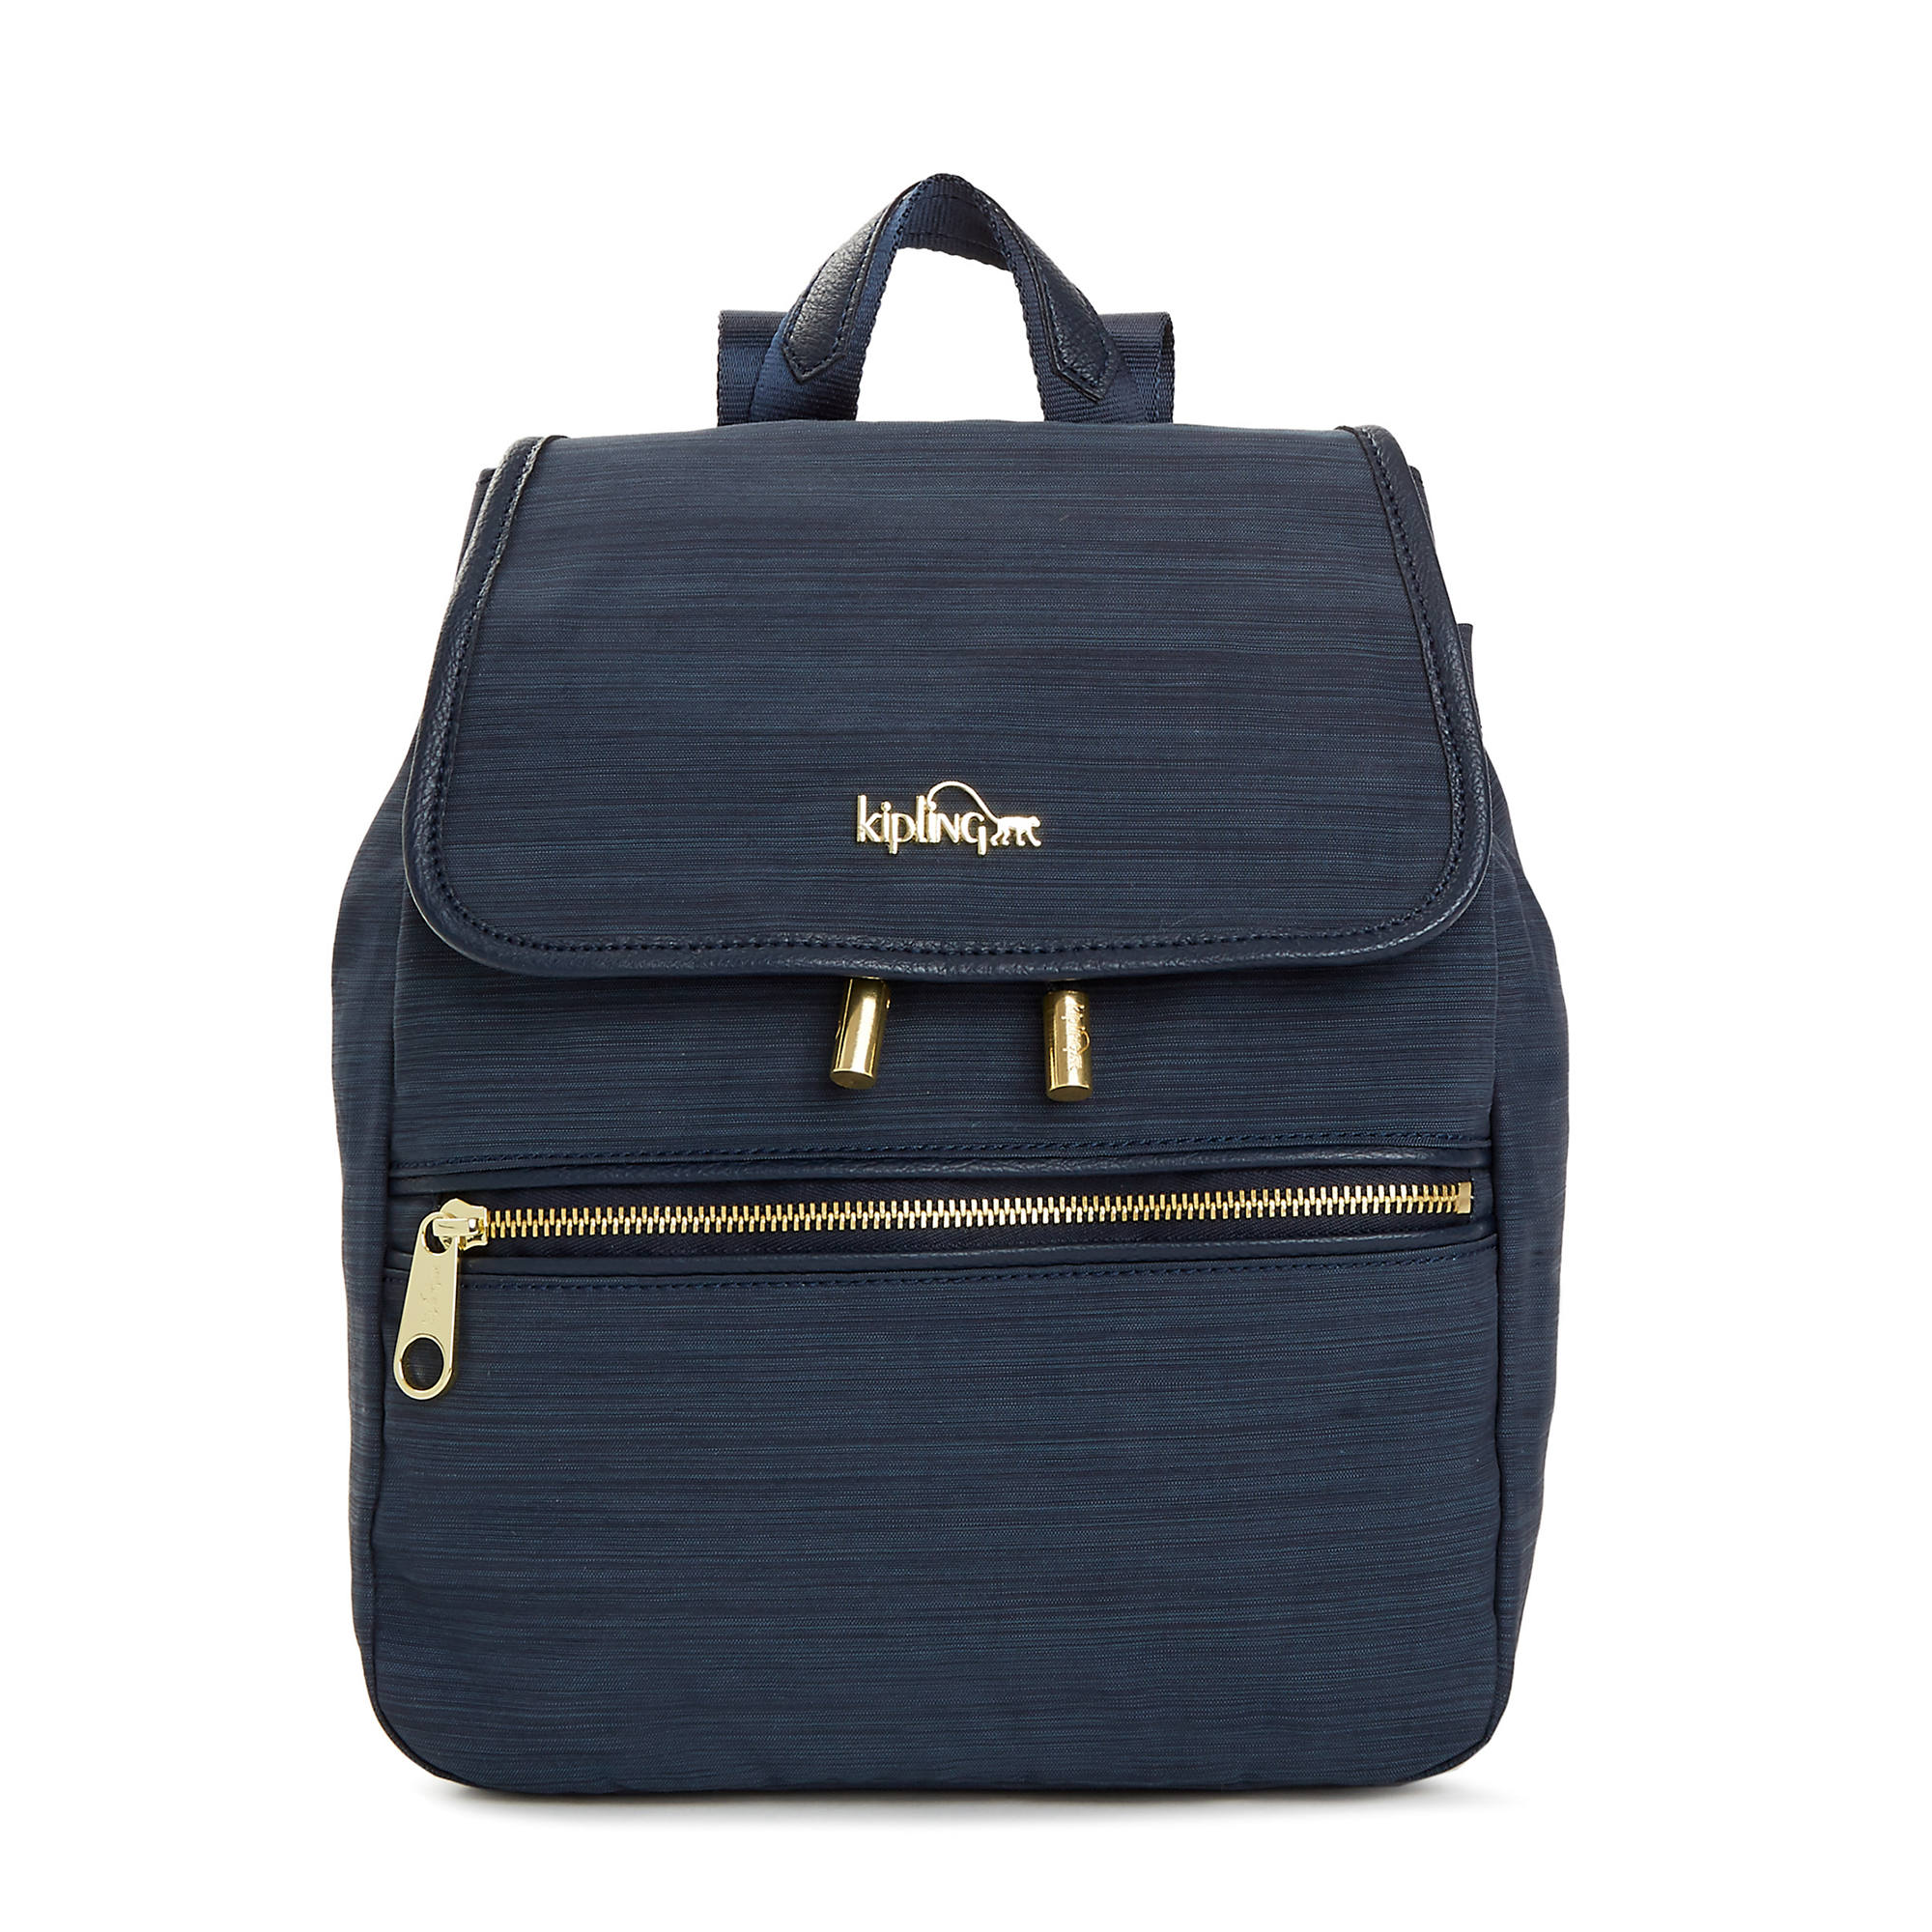 48150f5de4f Claudette Small Backpack,True Dazz Navy,large